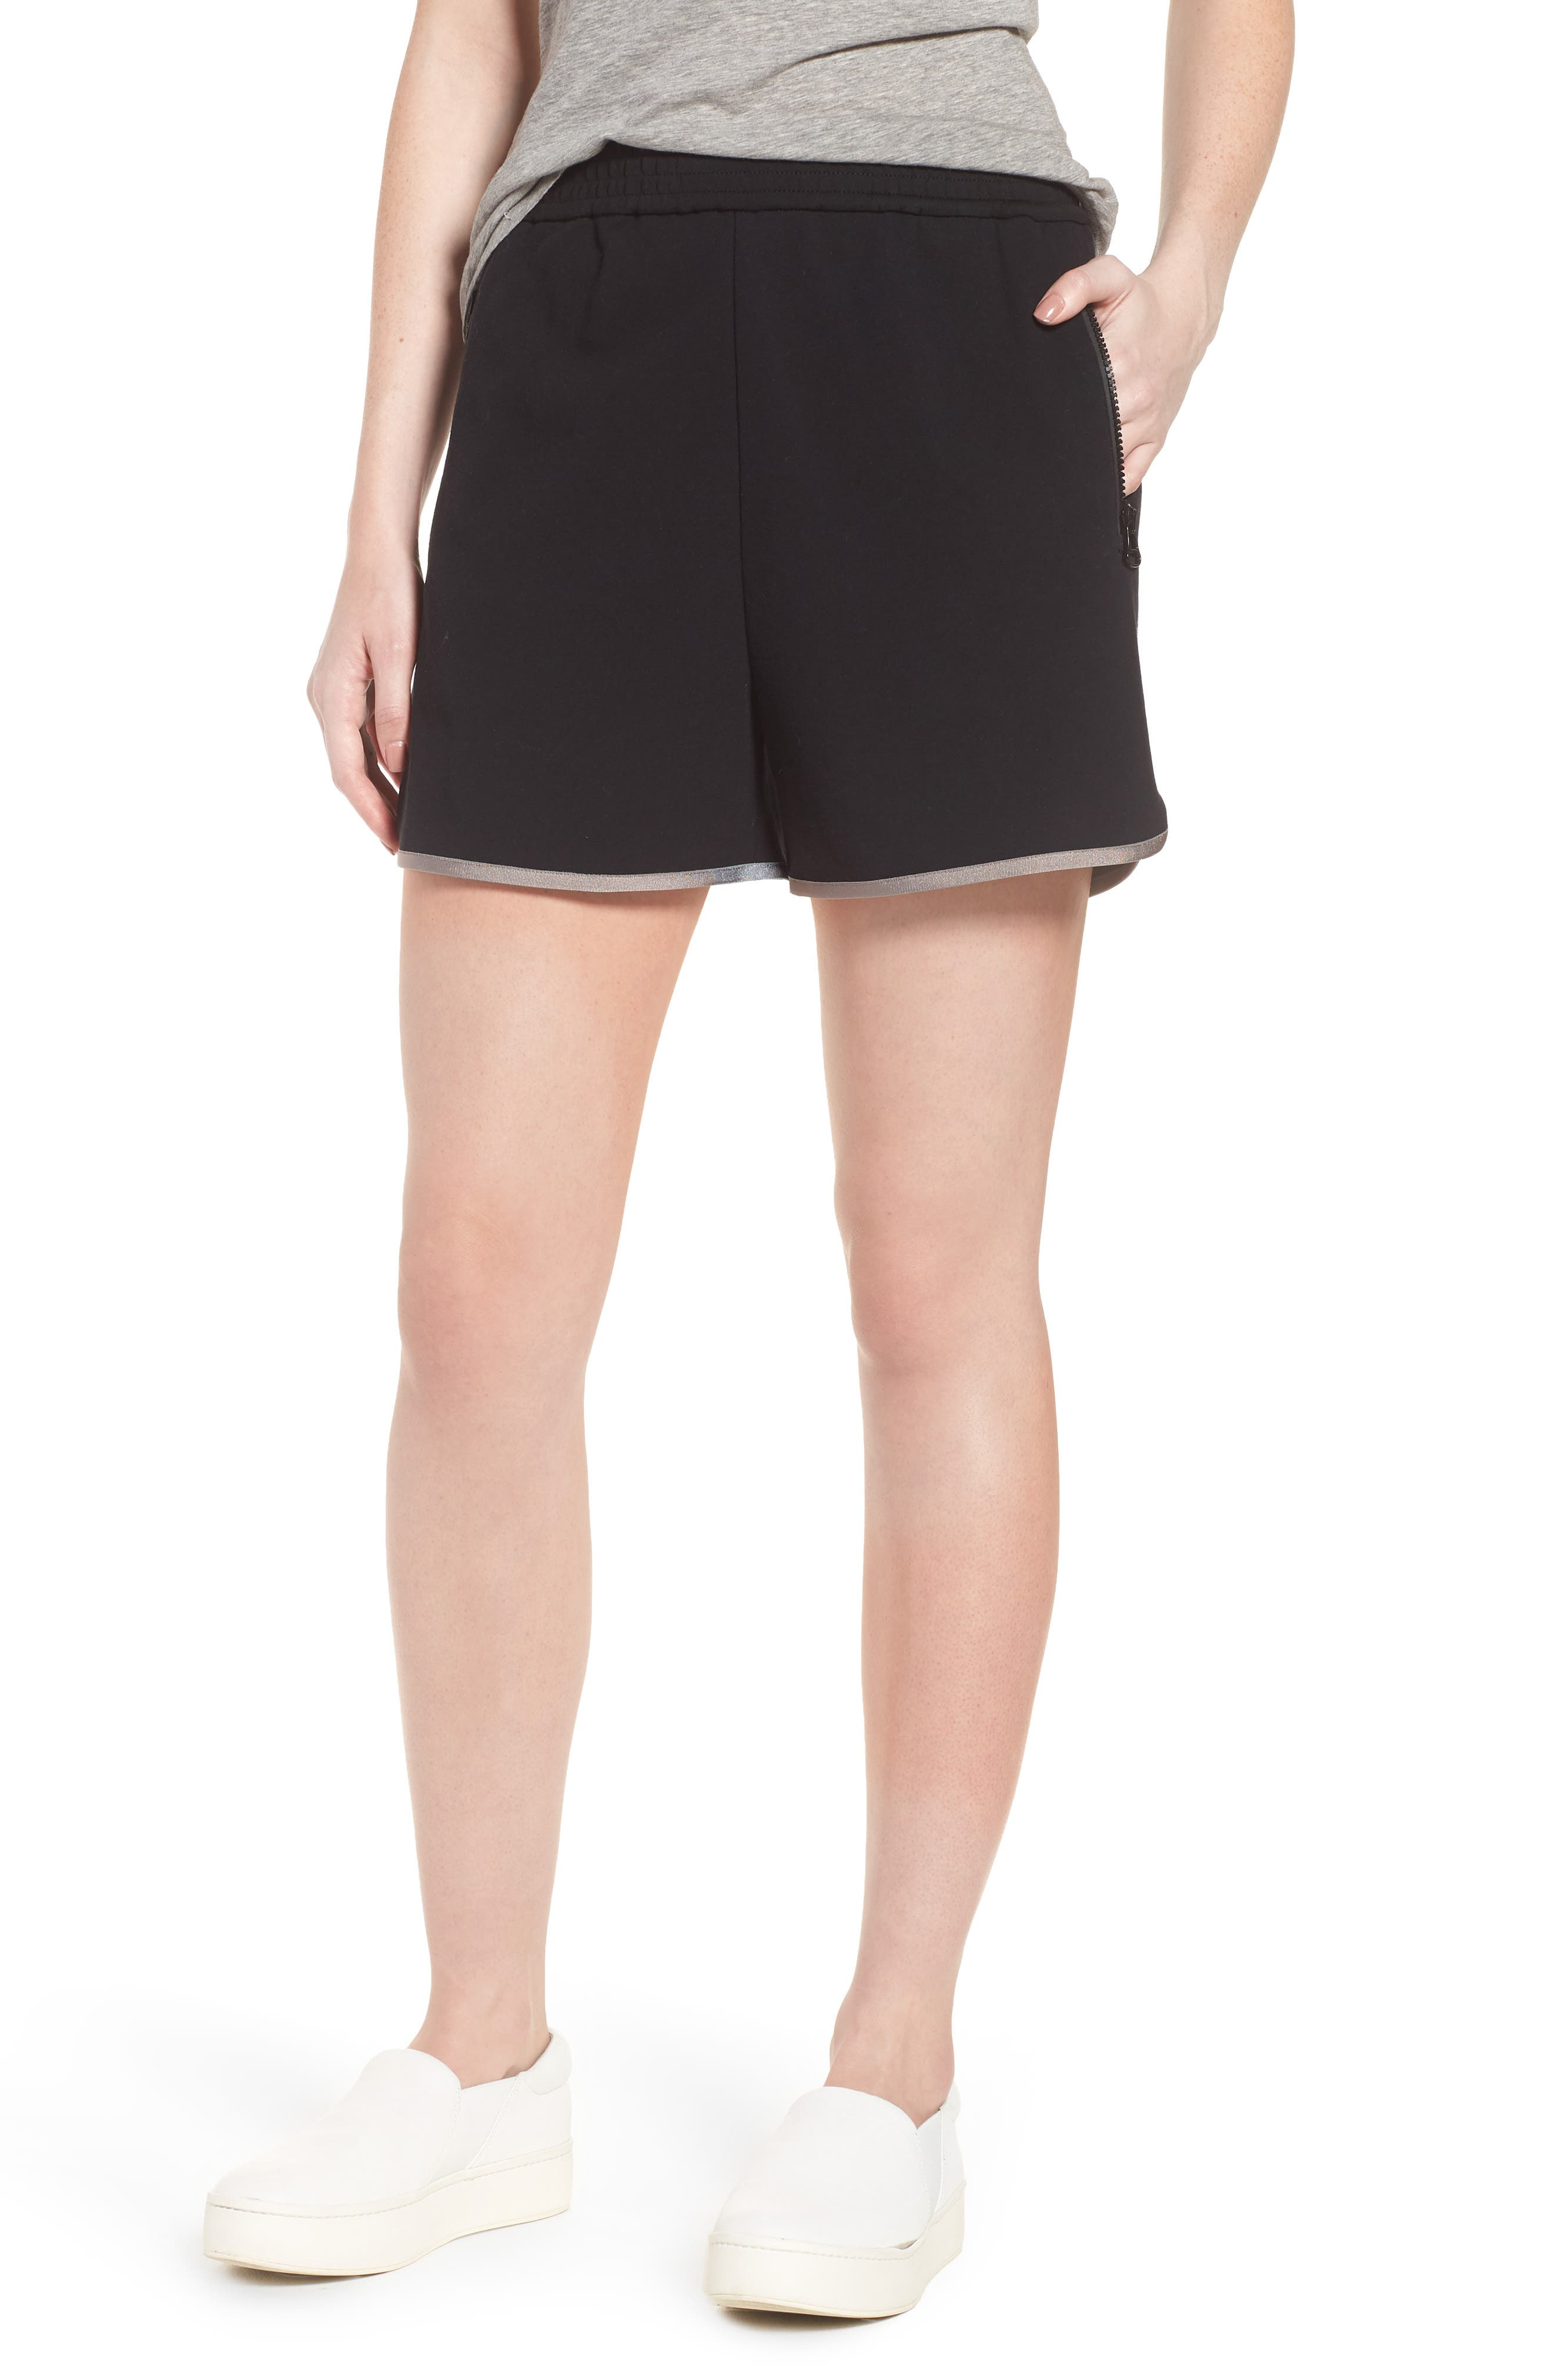 James Perse Gym Shorts